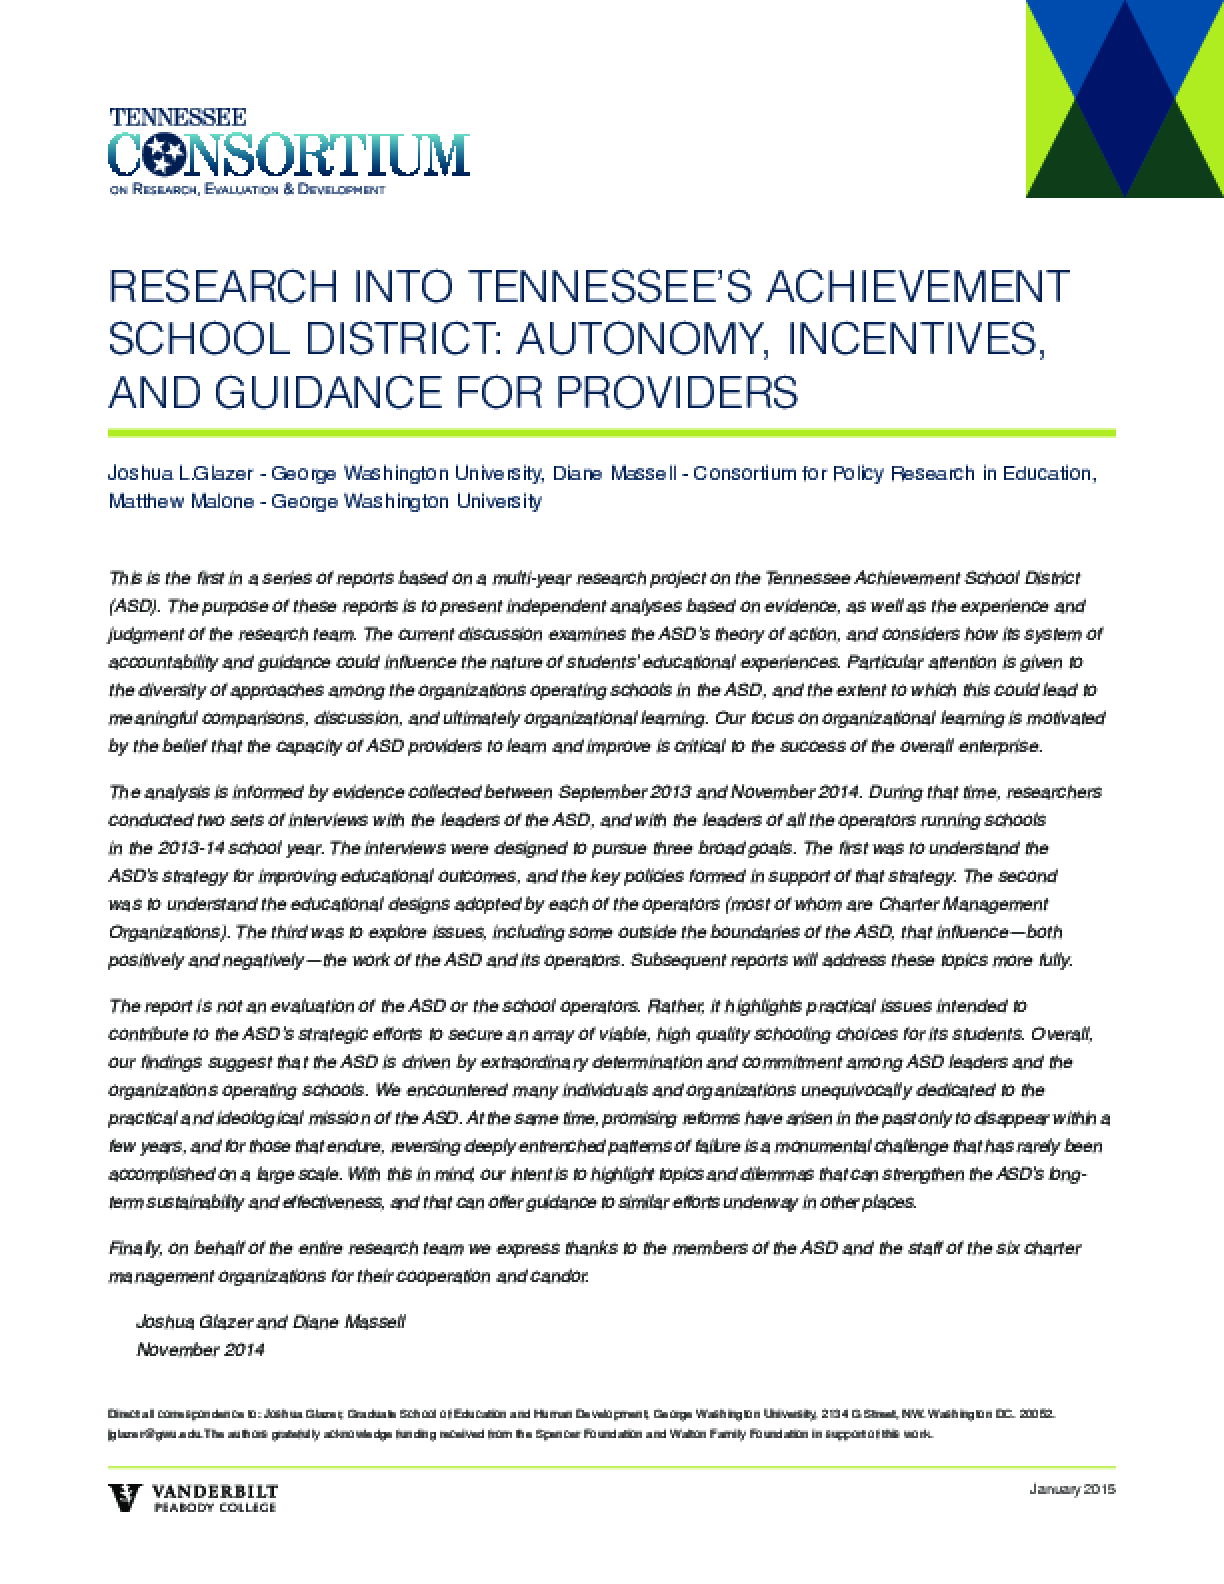 Research Into Tennessee's Achievement School District: Autonomy, Incentives, and Guidance for Providers